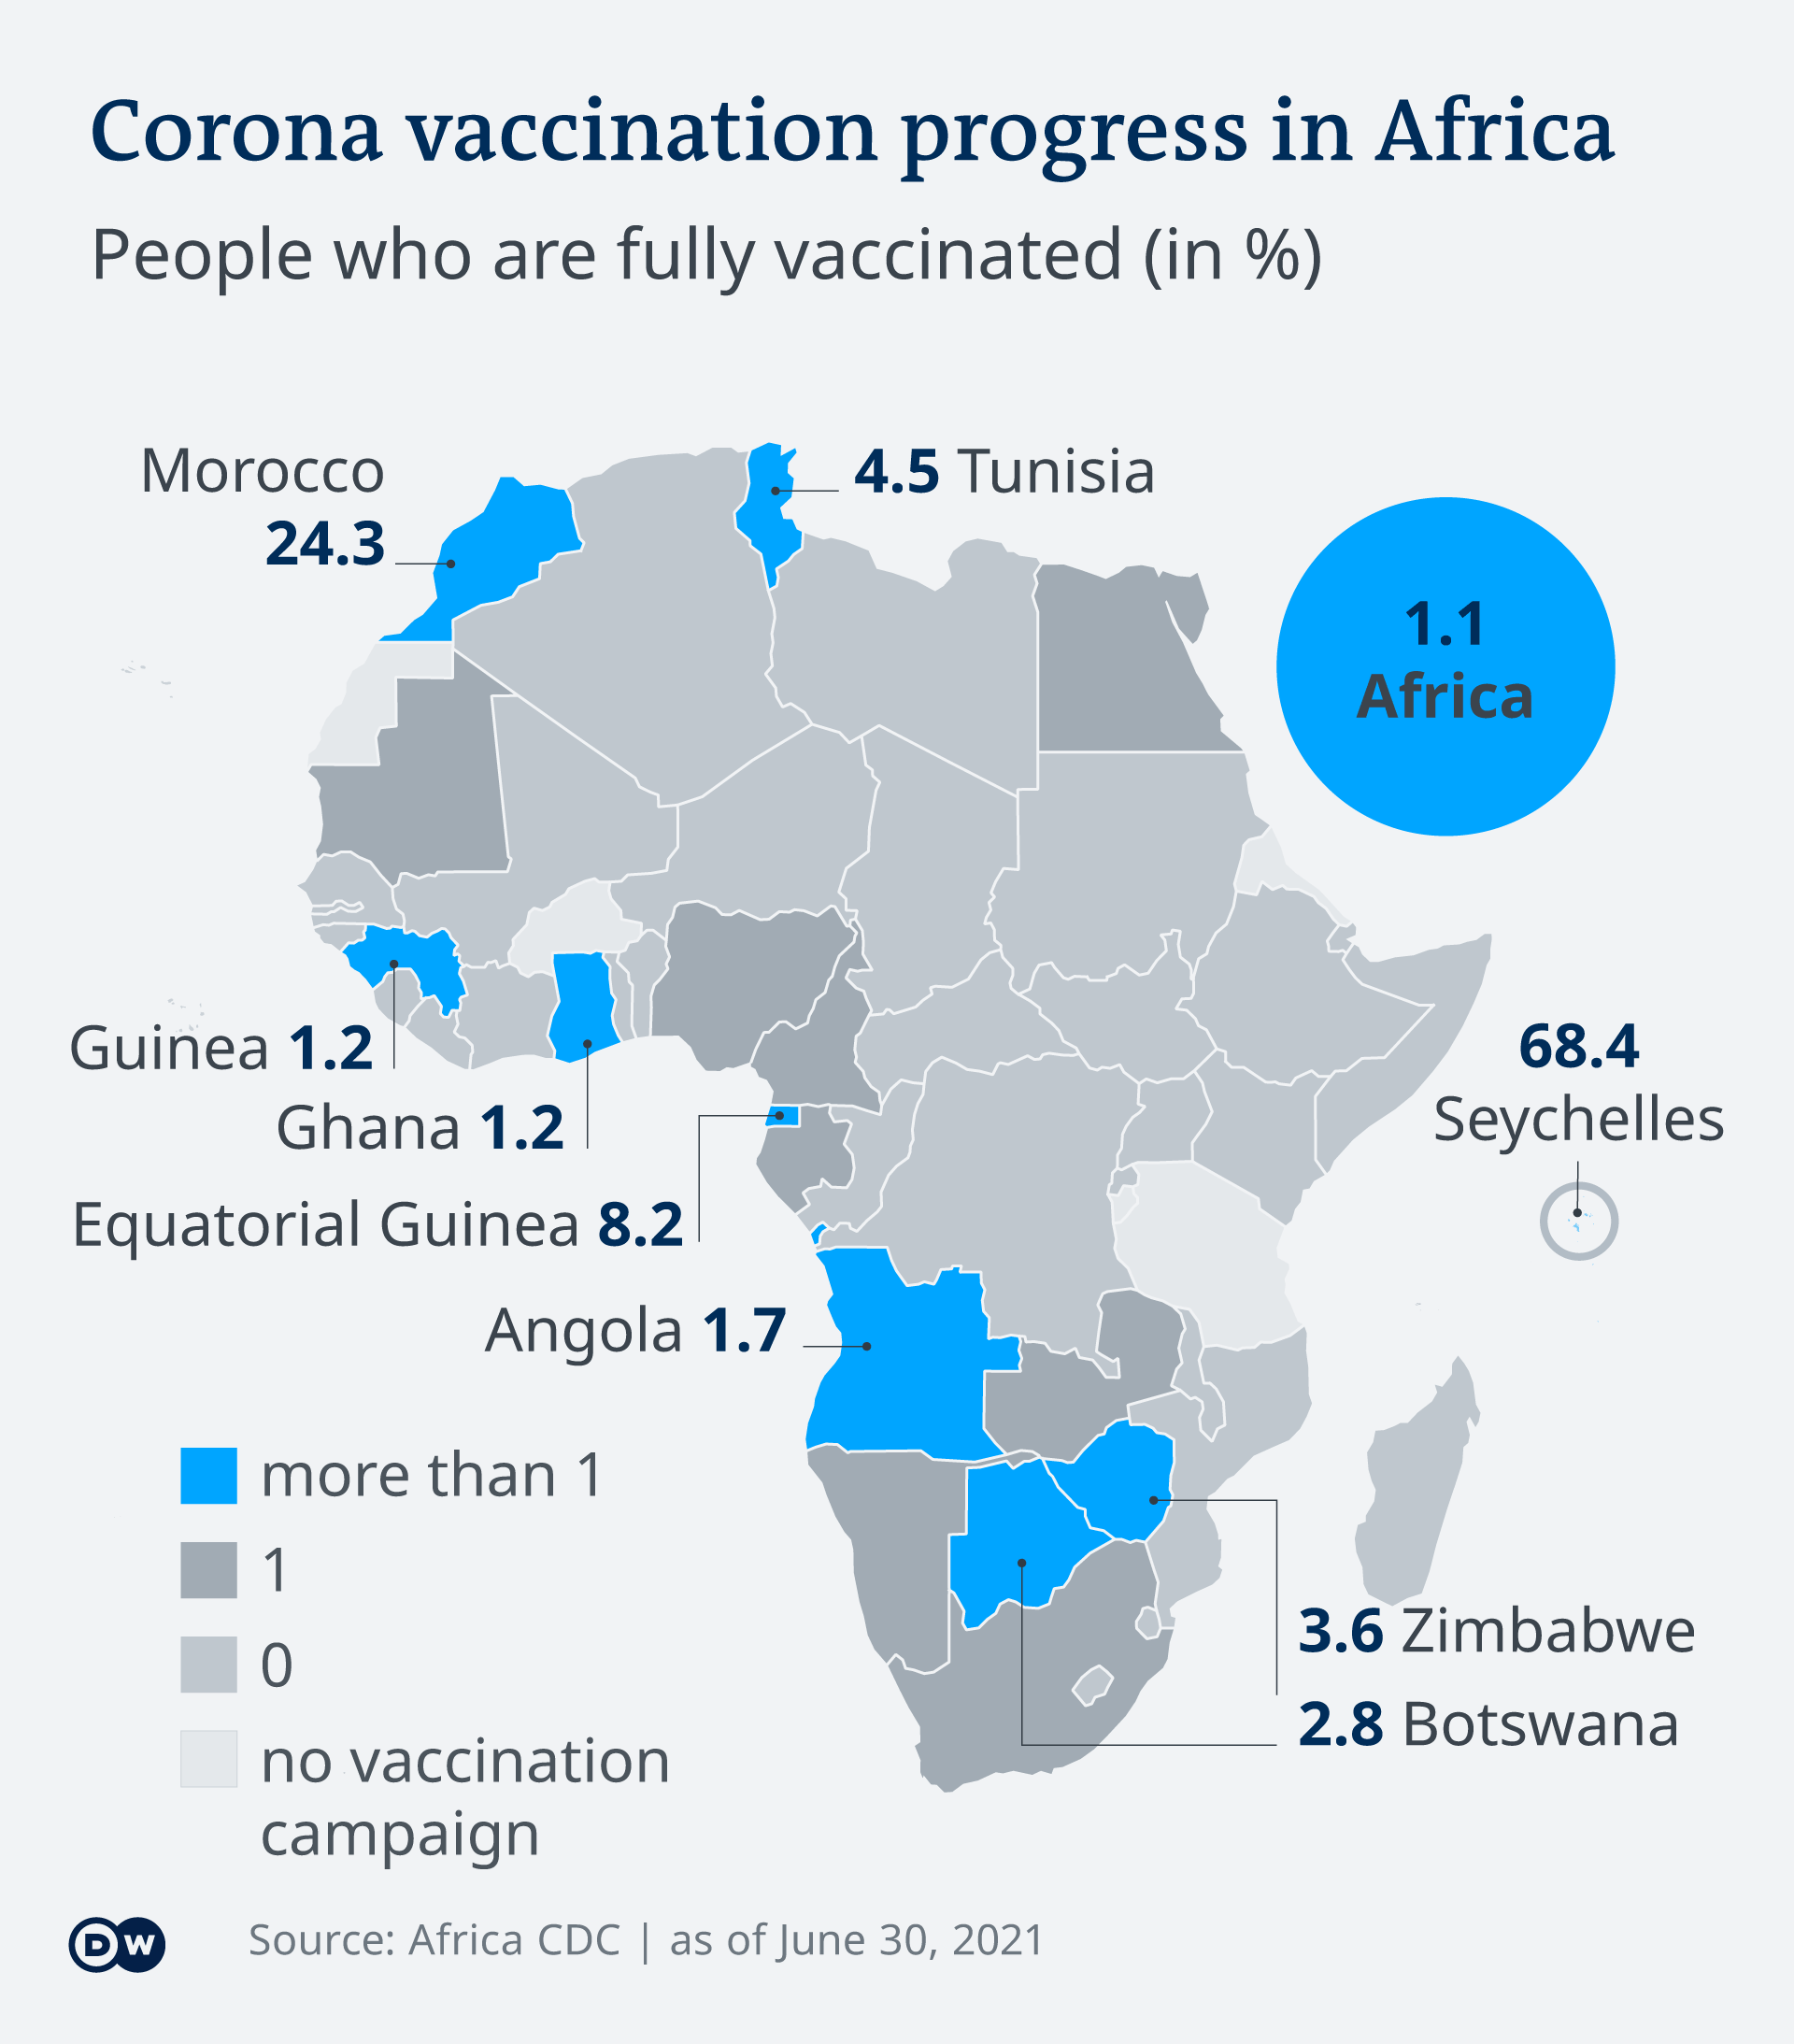 Map showing vaccination drive in Africa.